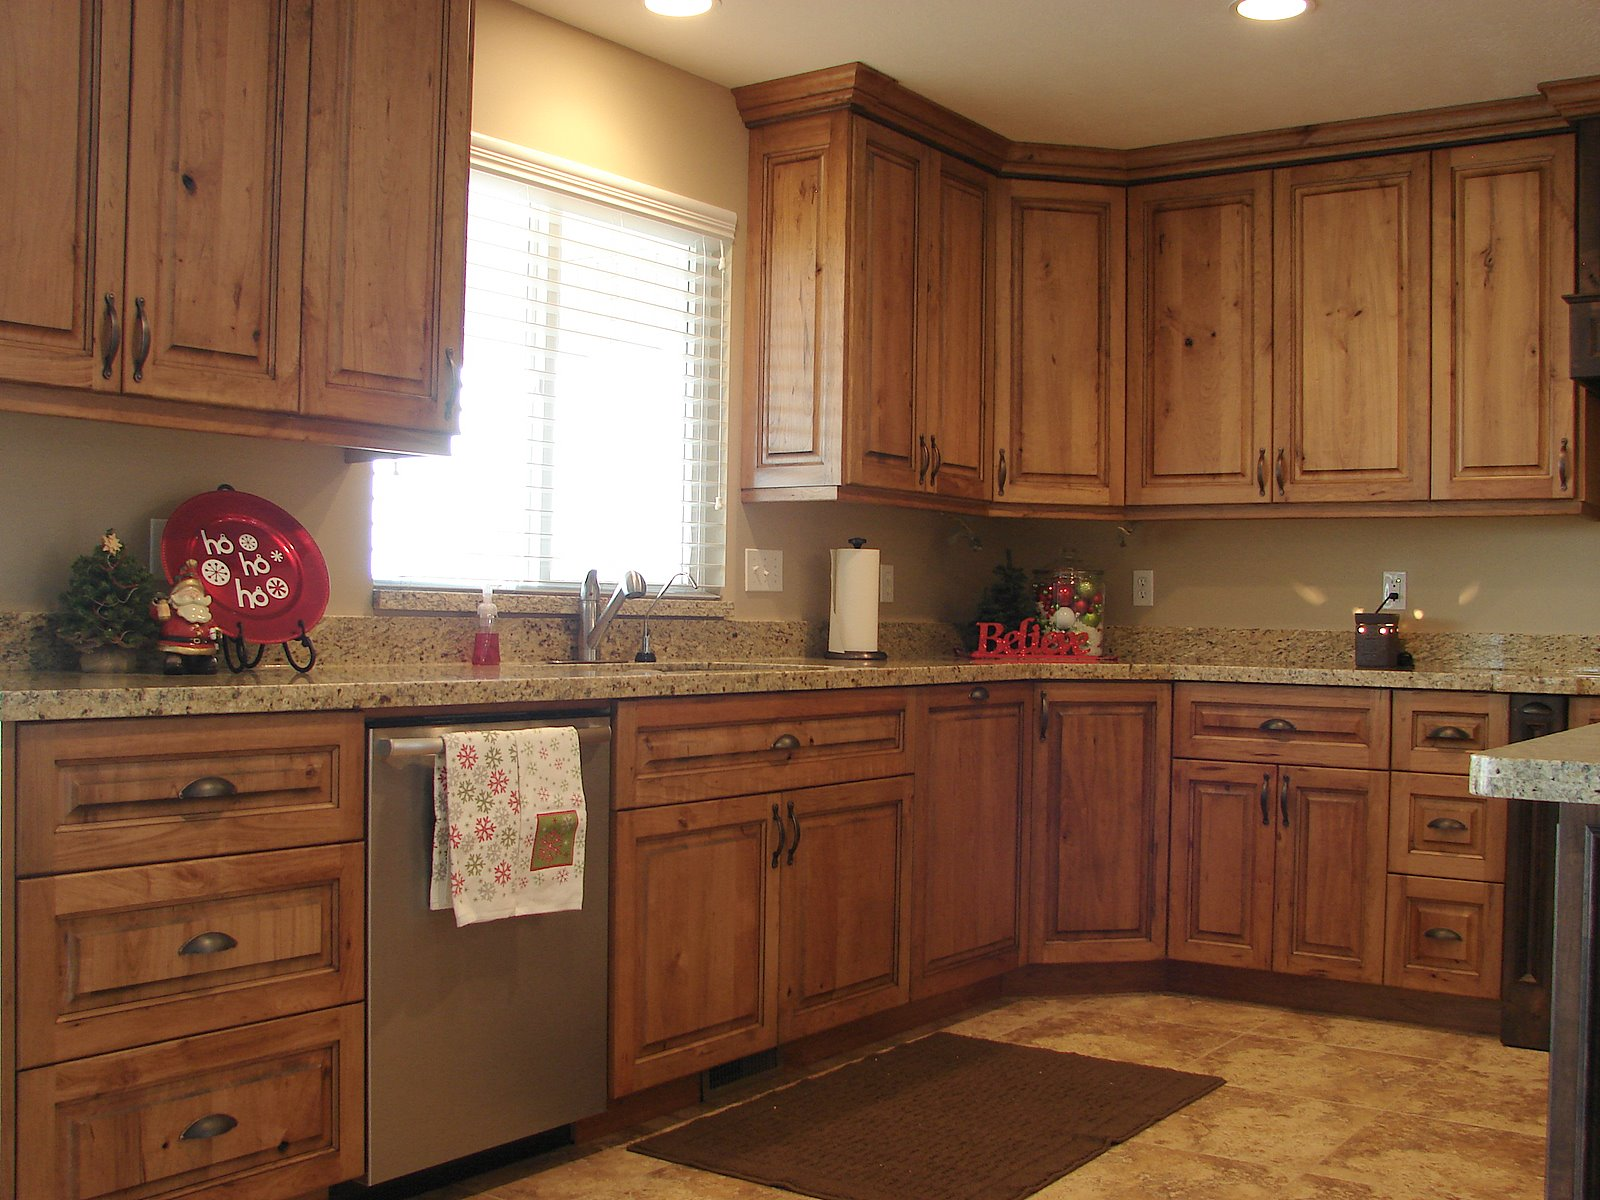 LEC Cabinets: Rustic Cherry Cabinets